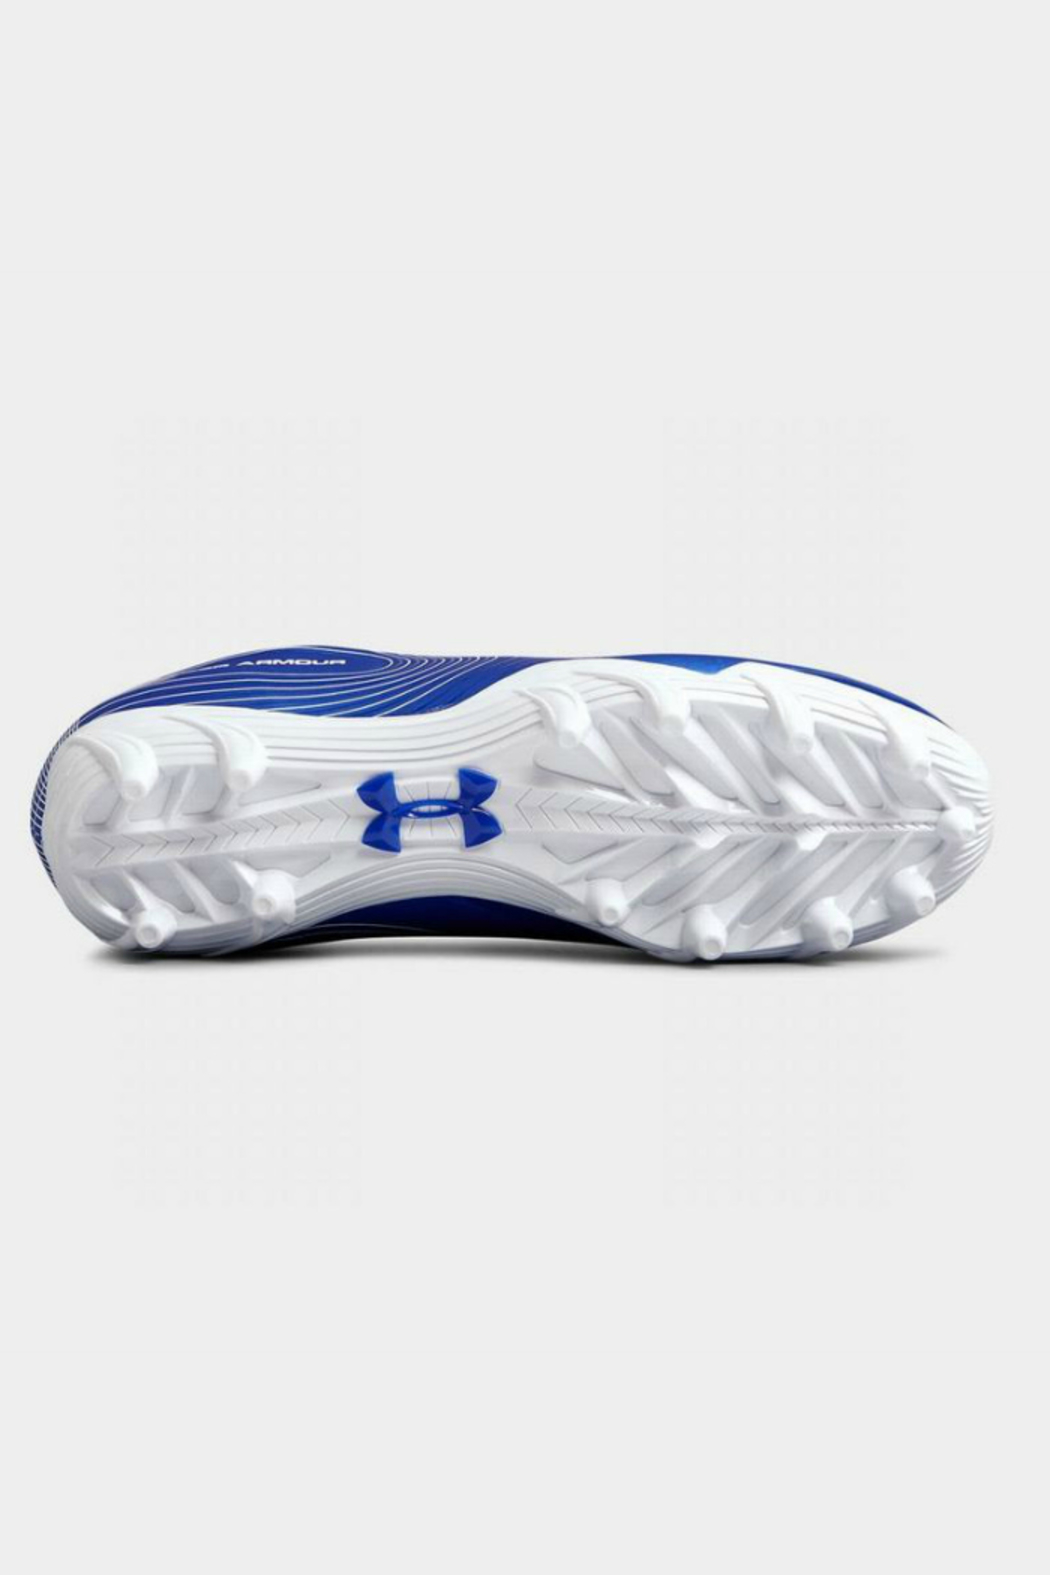 Under Armour SPEED PHANTOM JR. - Front Full Image